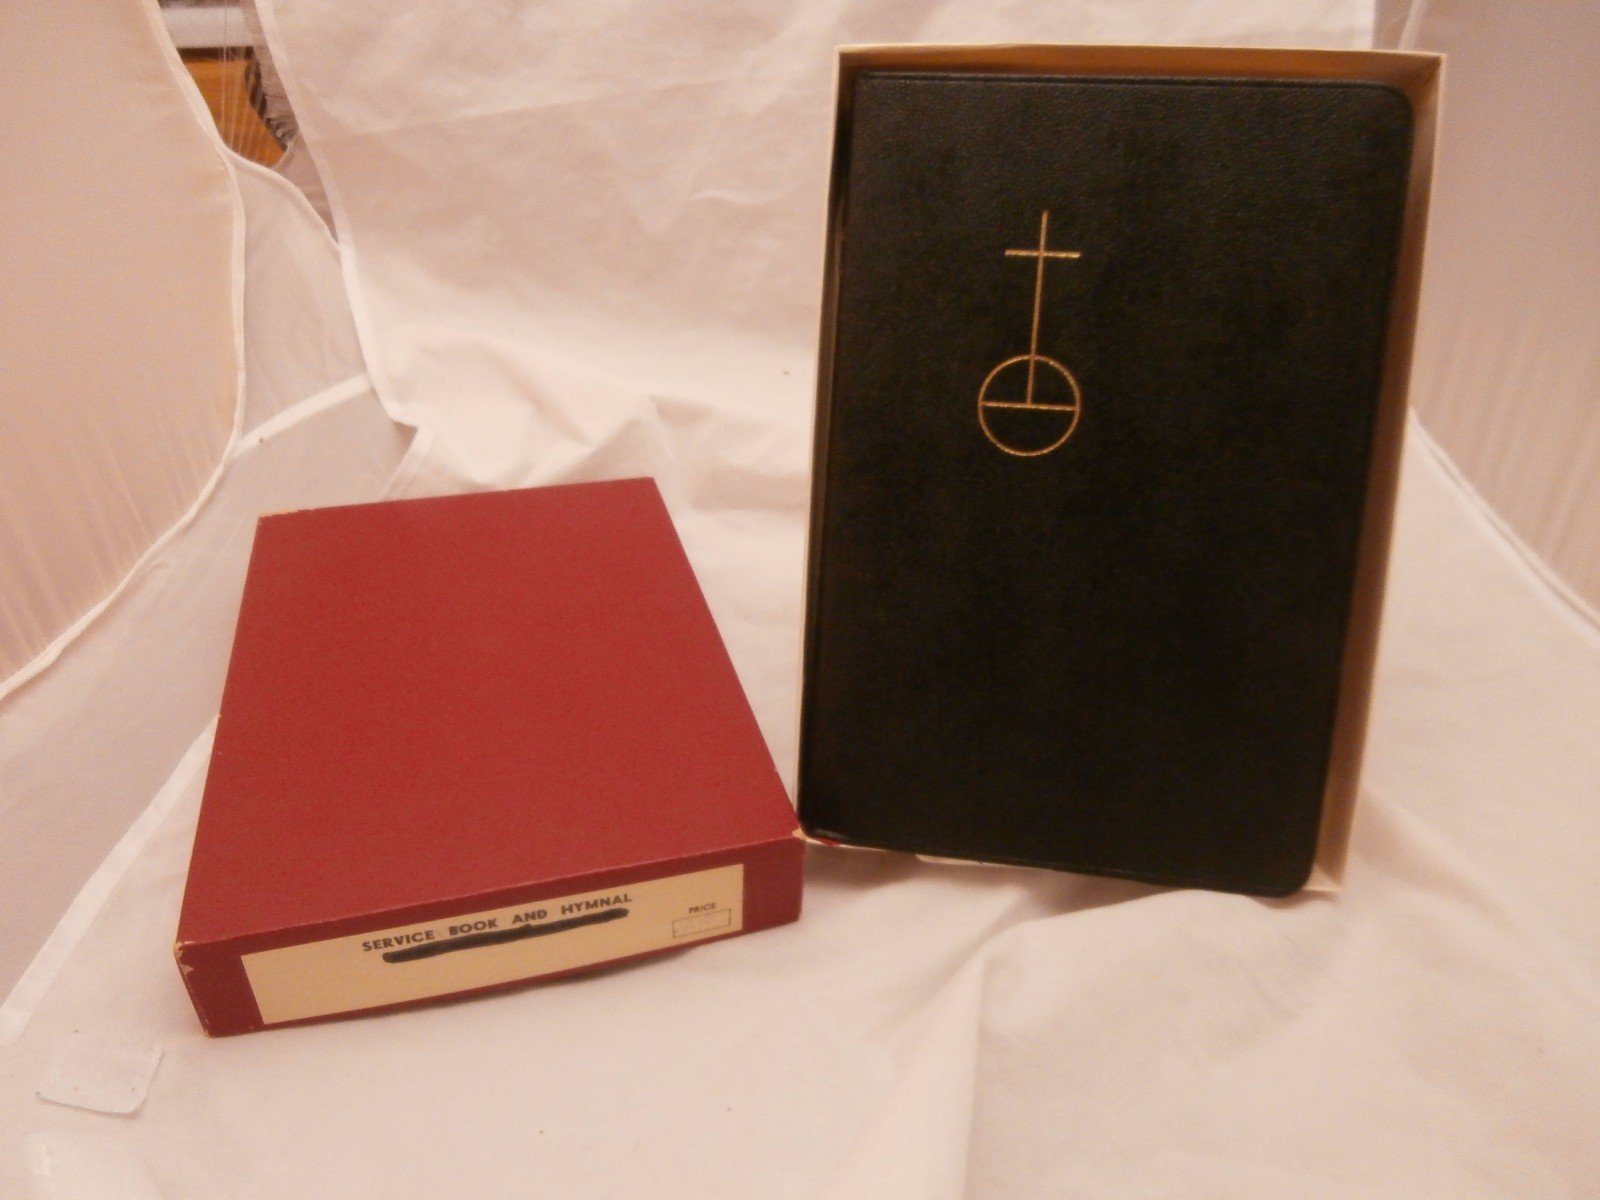 Service Book and Hymnal of the Lutheran Church in America